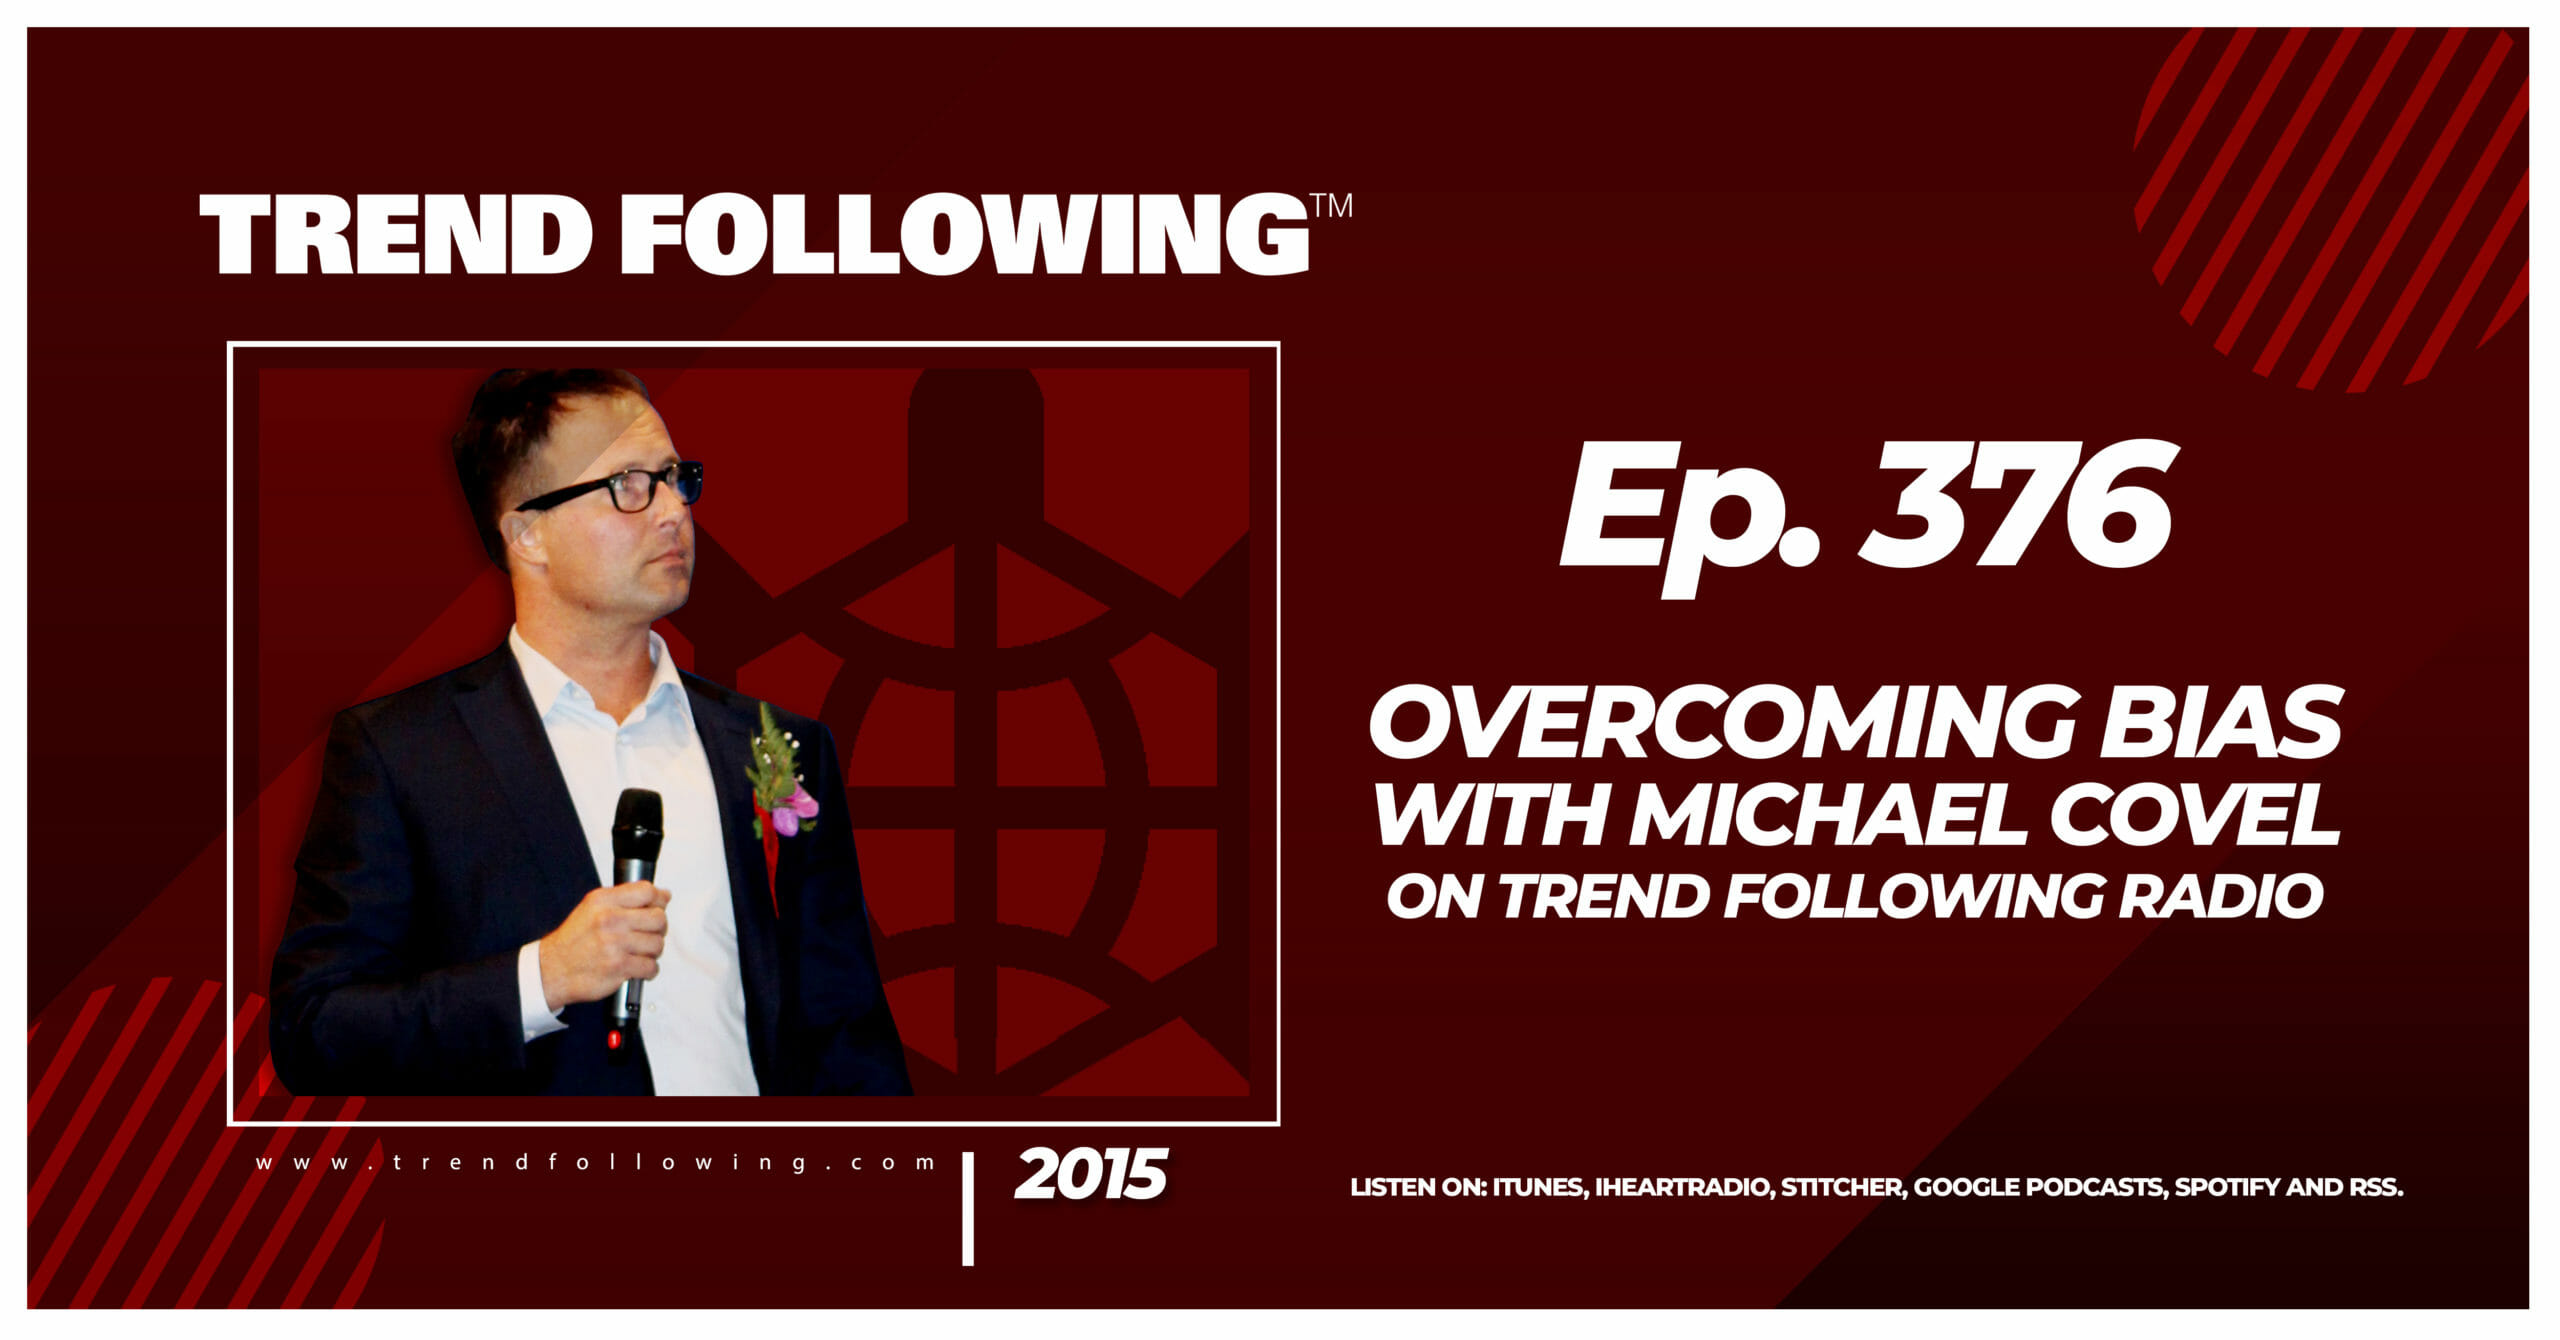 Overcoming Bias with Michael Covel on Trend Following Radio